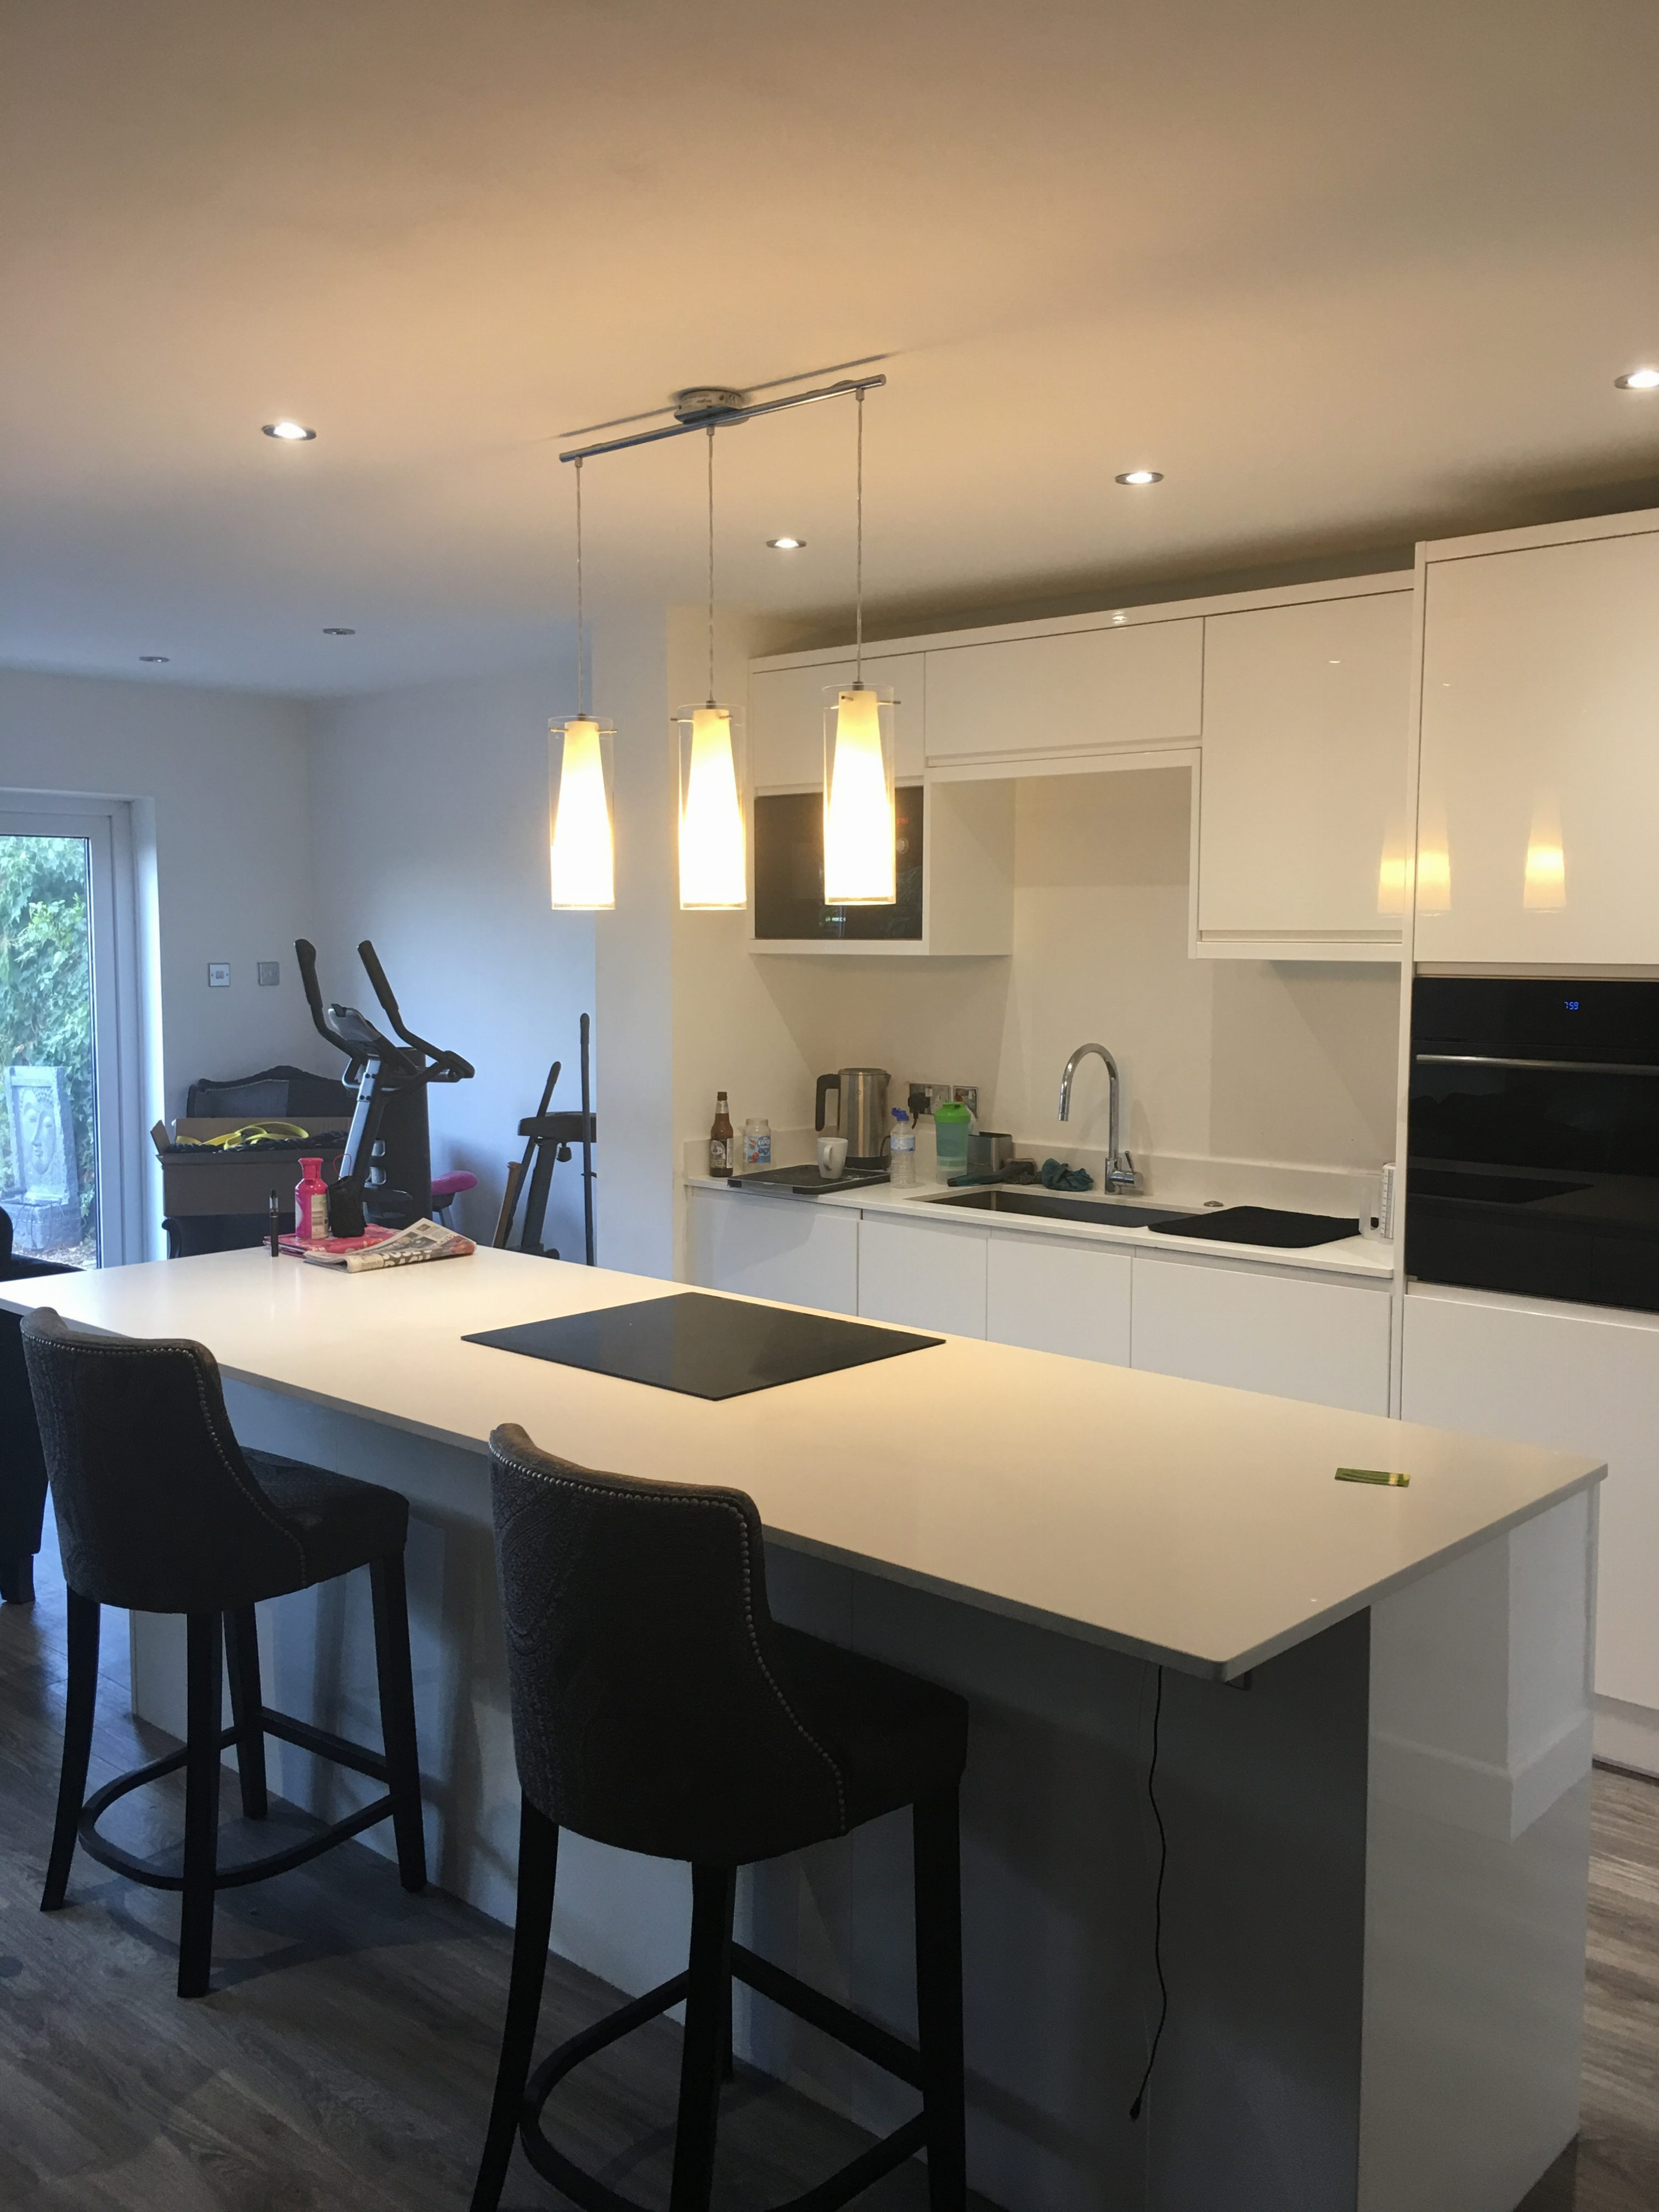 Recommended builders essex -kItchens - Windows & Doors, Orangeries, Roofs, Extentions, Sovereign Home, Essex (2485)